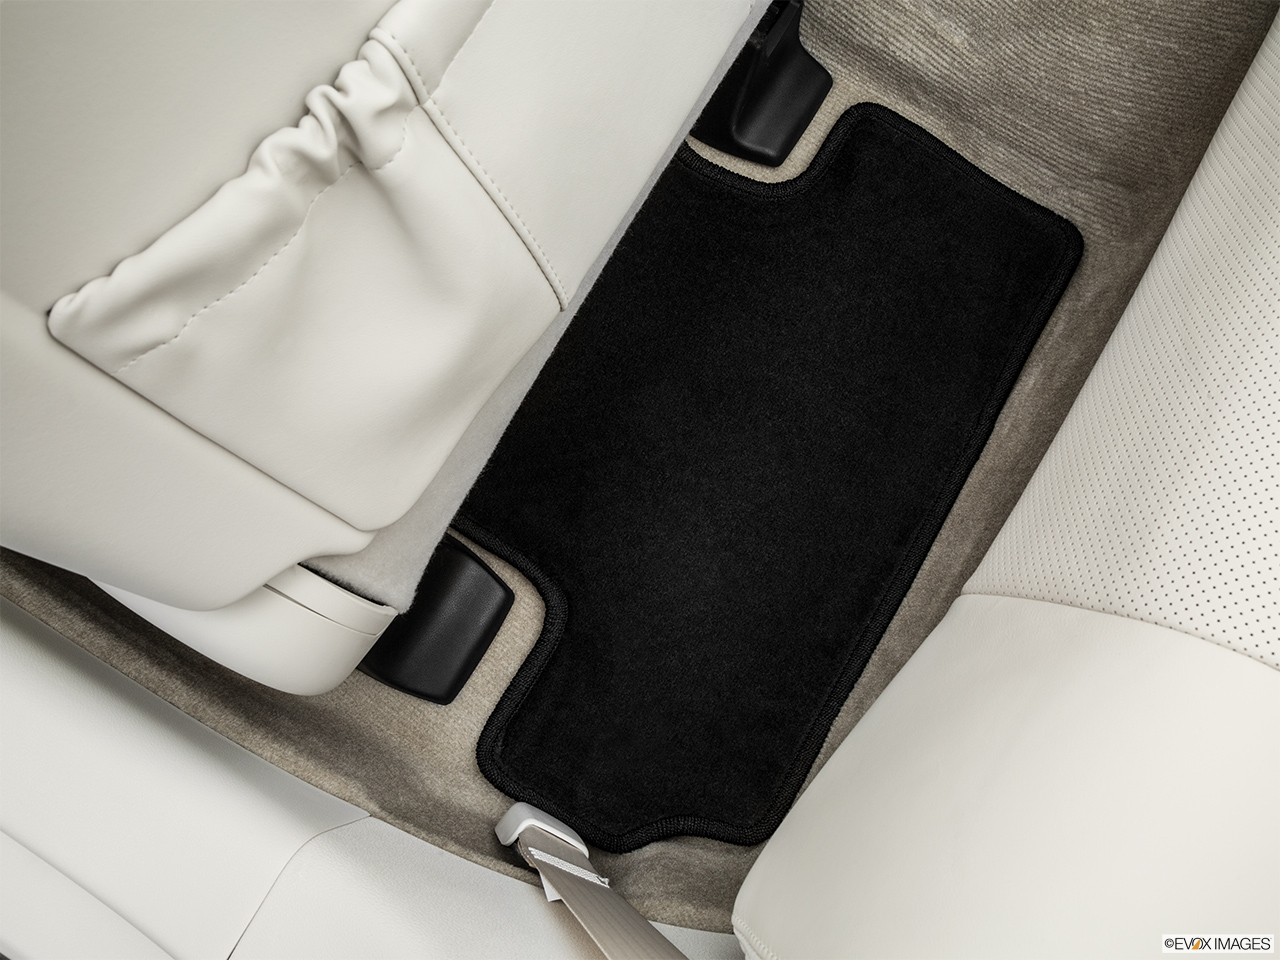 2015 Lexus IS C IS 350 Rear driver's side floor mat. Mid-seat level from outside looking in.